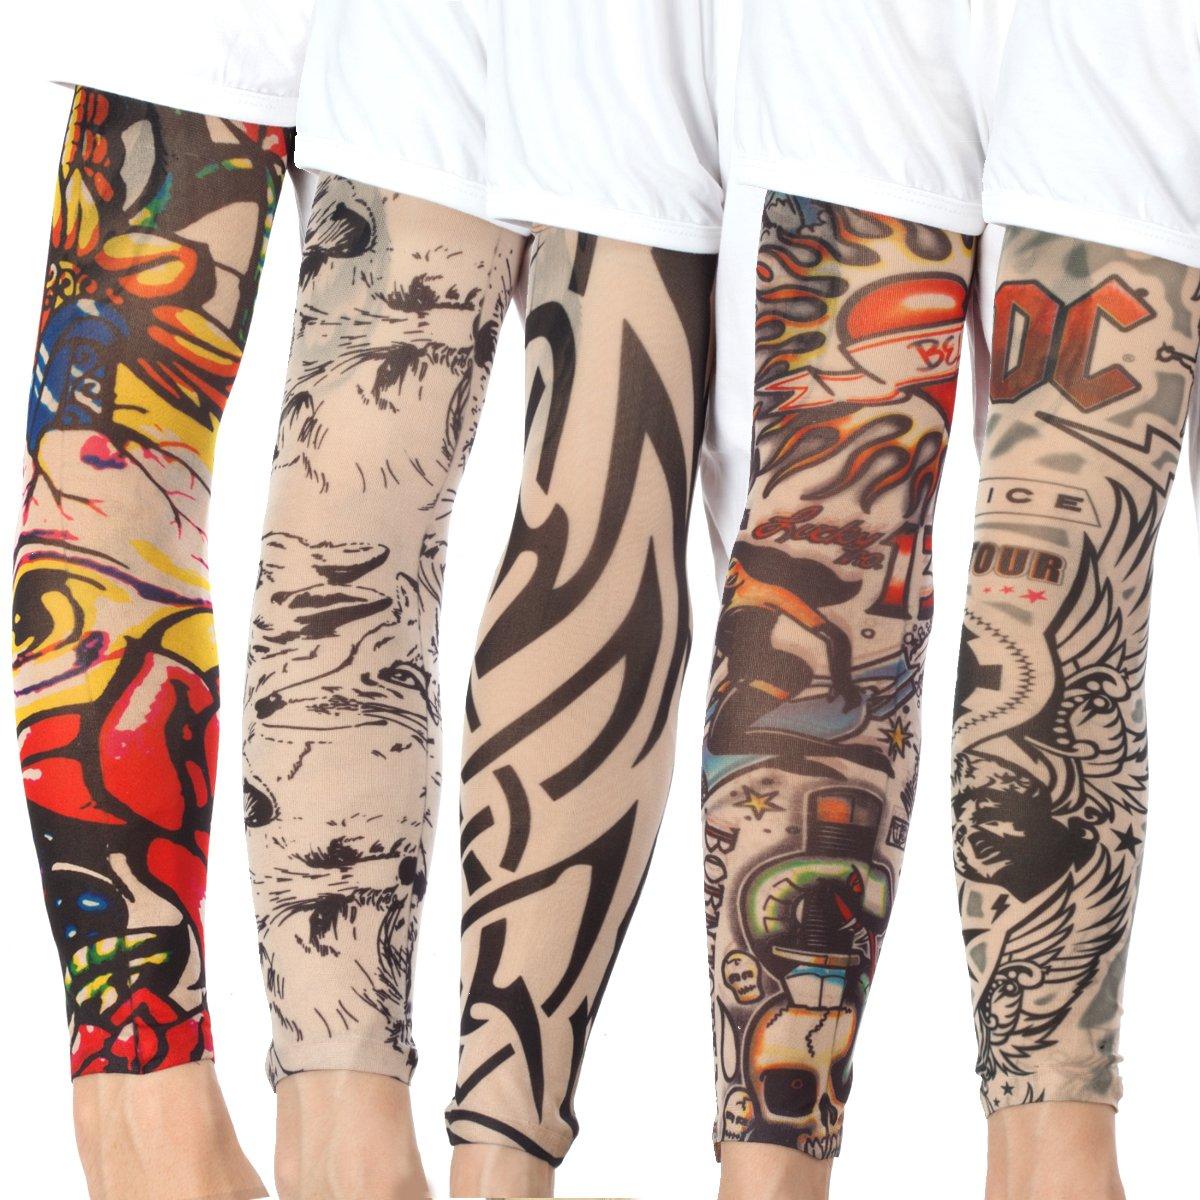 20PCS Set Arts Fake Temporary Tattoo Arm Sunscreen Sleeves - AKStore - Designs Tiger, Crown Heart, Skull, Tribal and Etc by Akstore (Image #3)